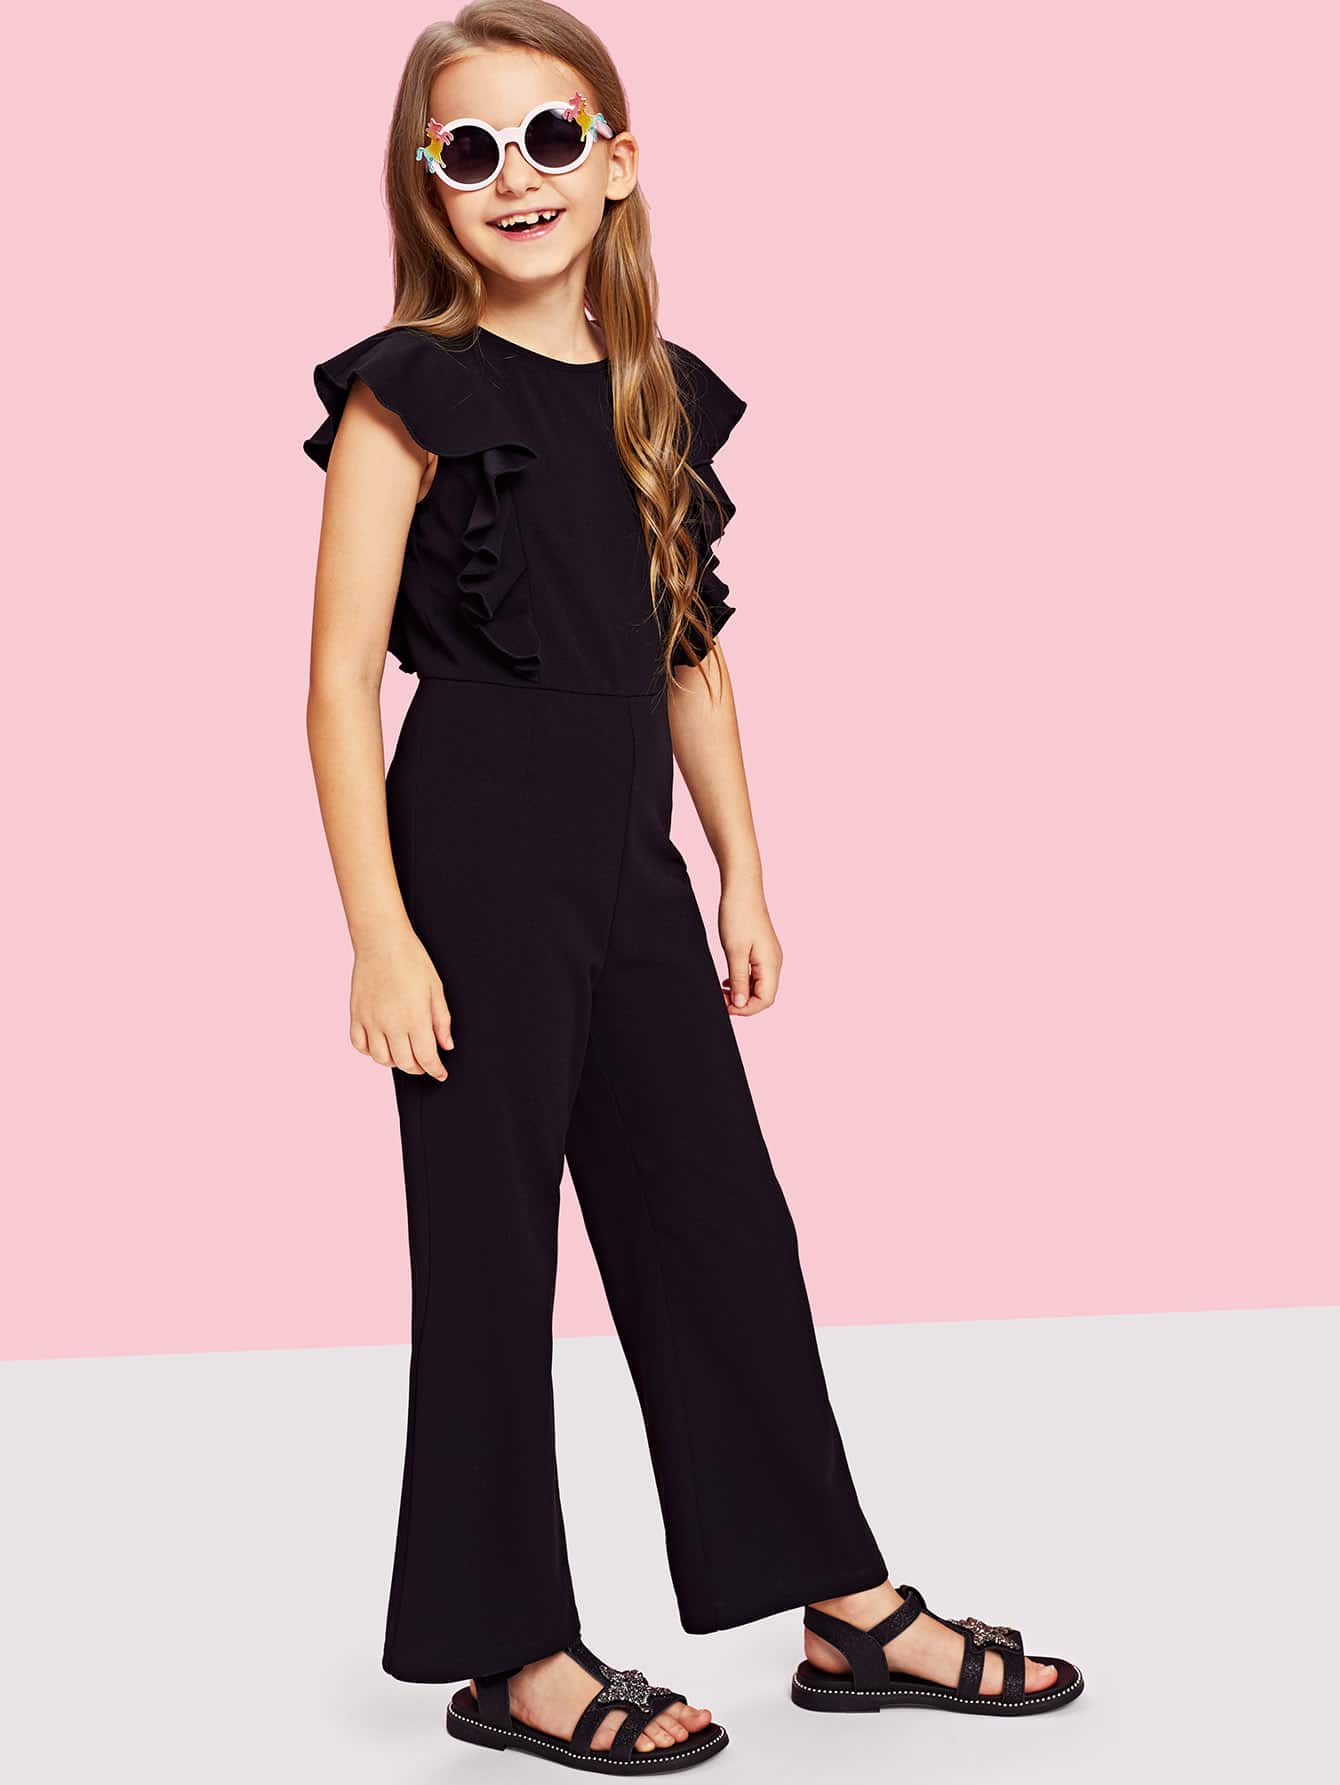 Girls Ruffle Trim Zip Back Round Neck Jumpsuit 31 век ar130